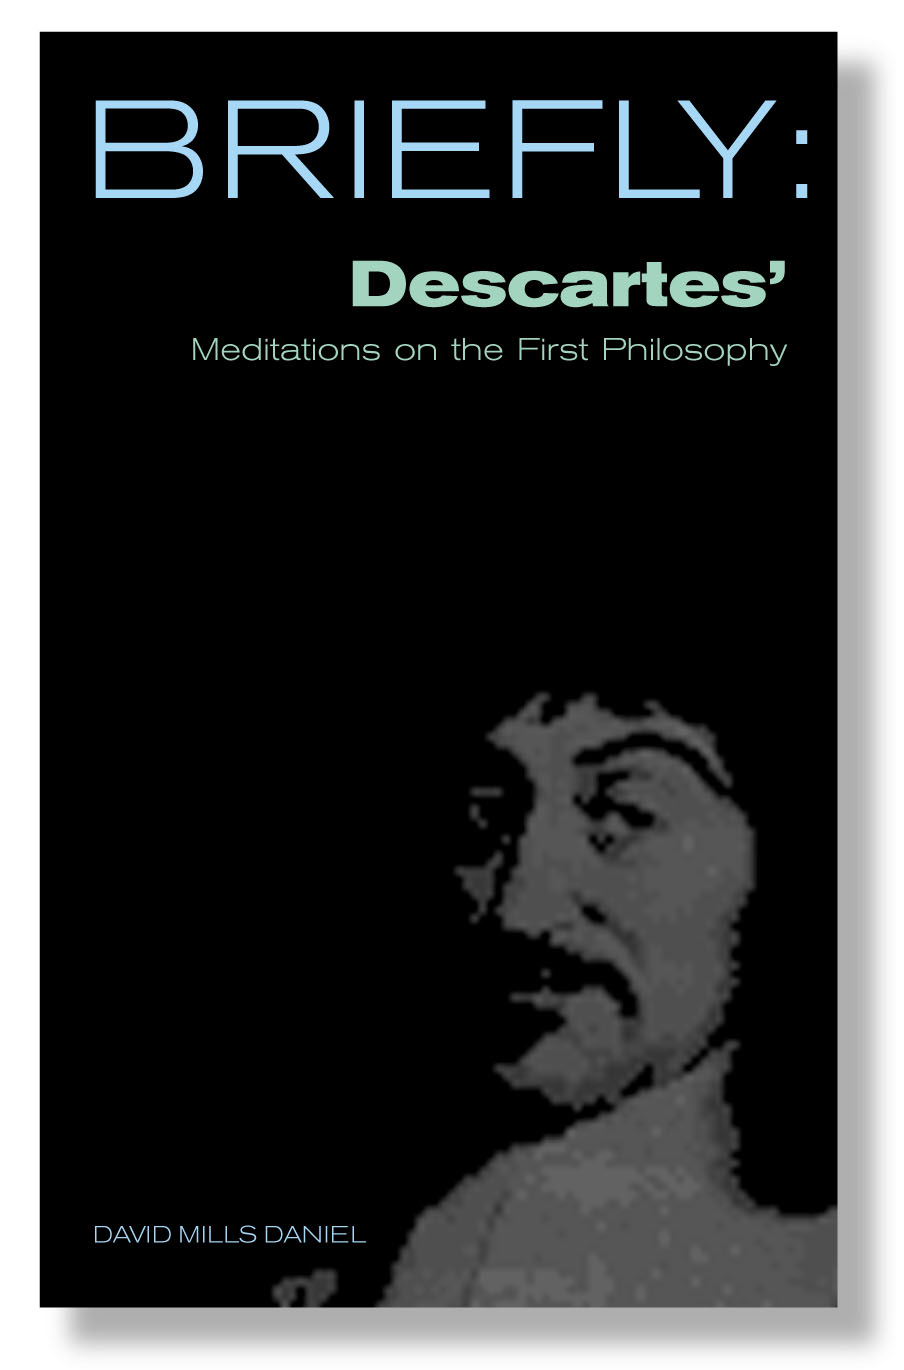 "essays descartes meditations ""give a detailed account of descartes' systematic doubt or methodical doubt in meditation 1, making it certain that you distinguish between real doubts and so."